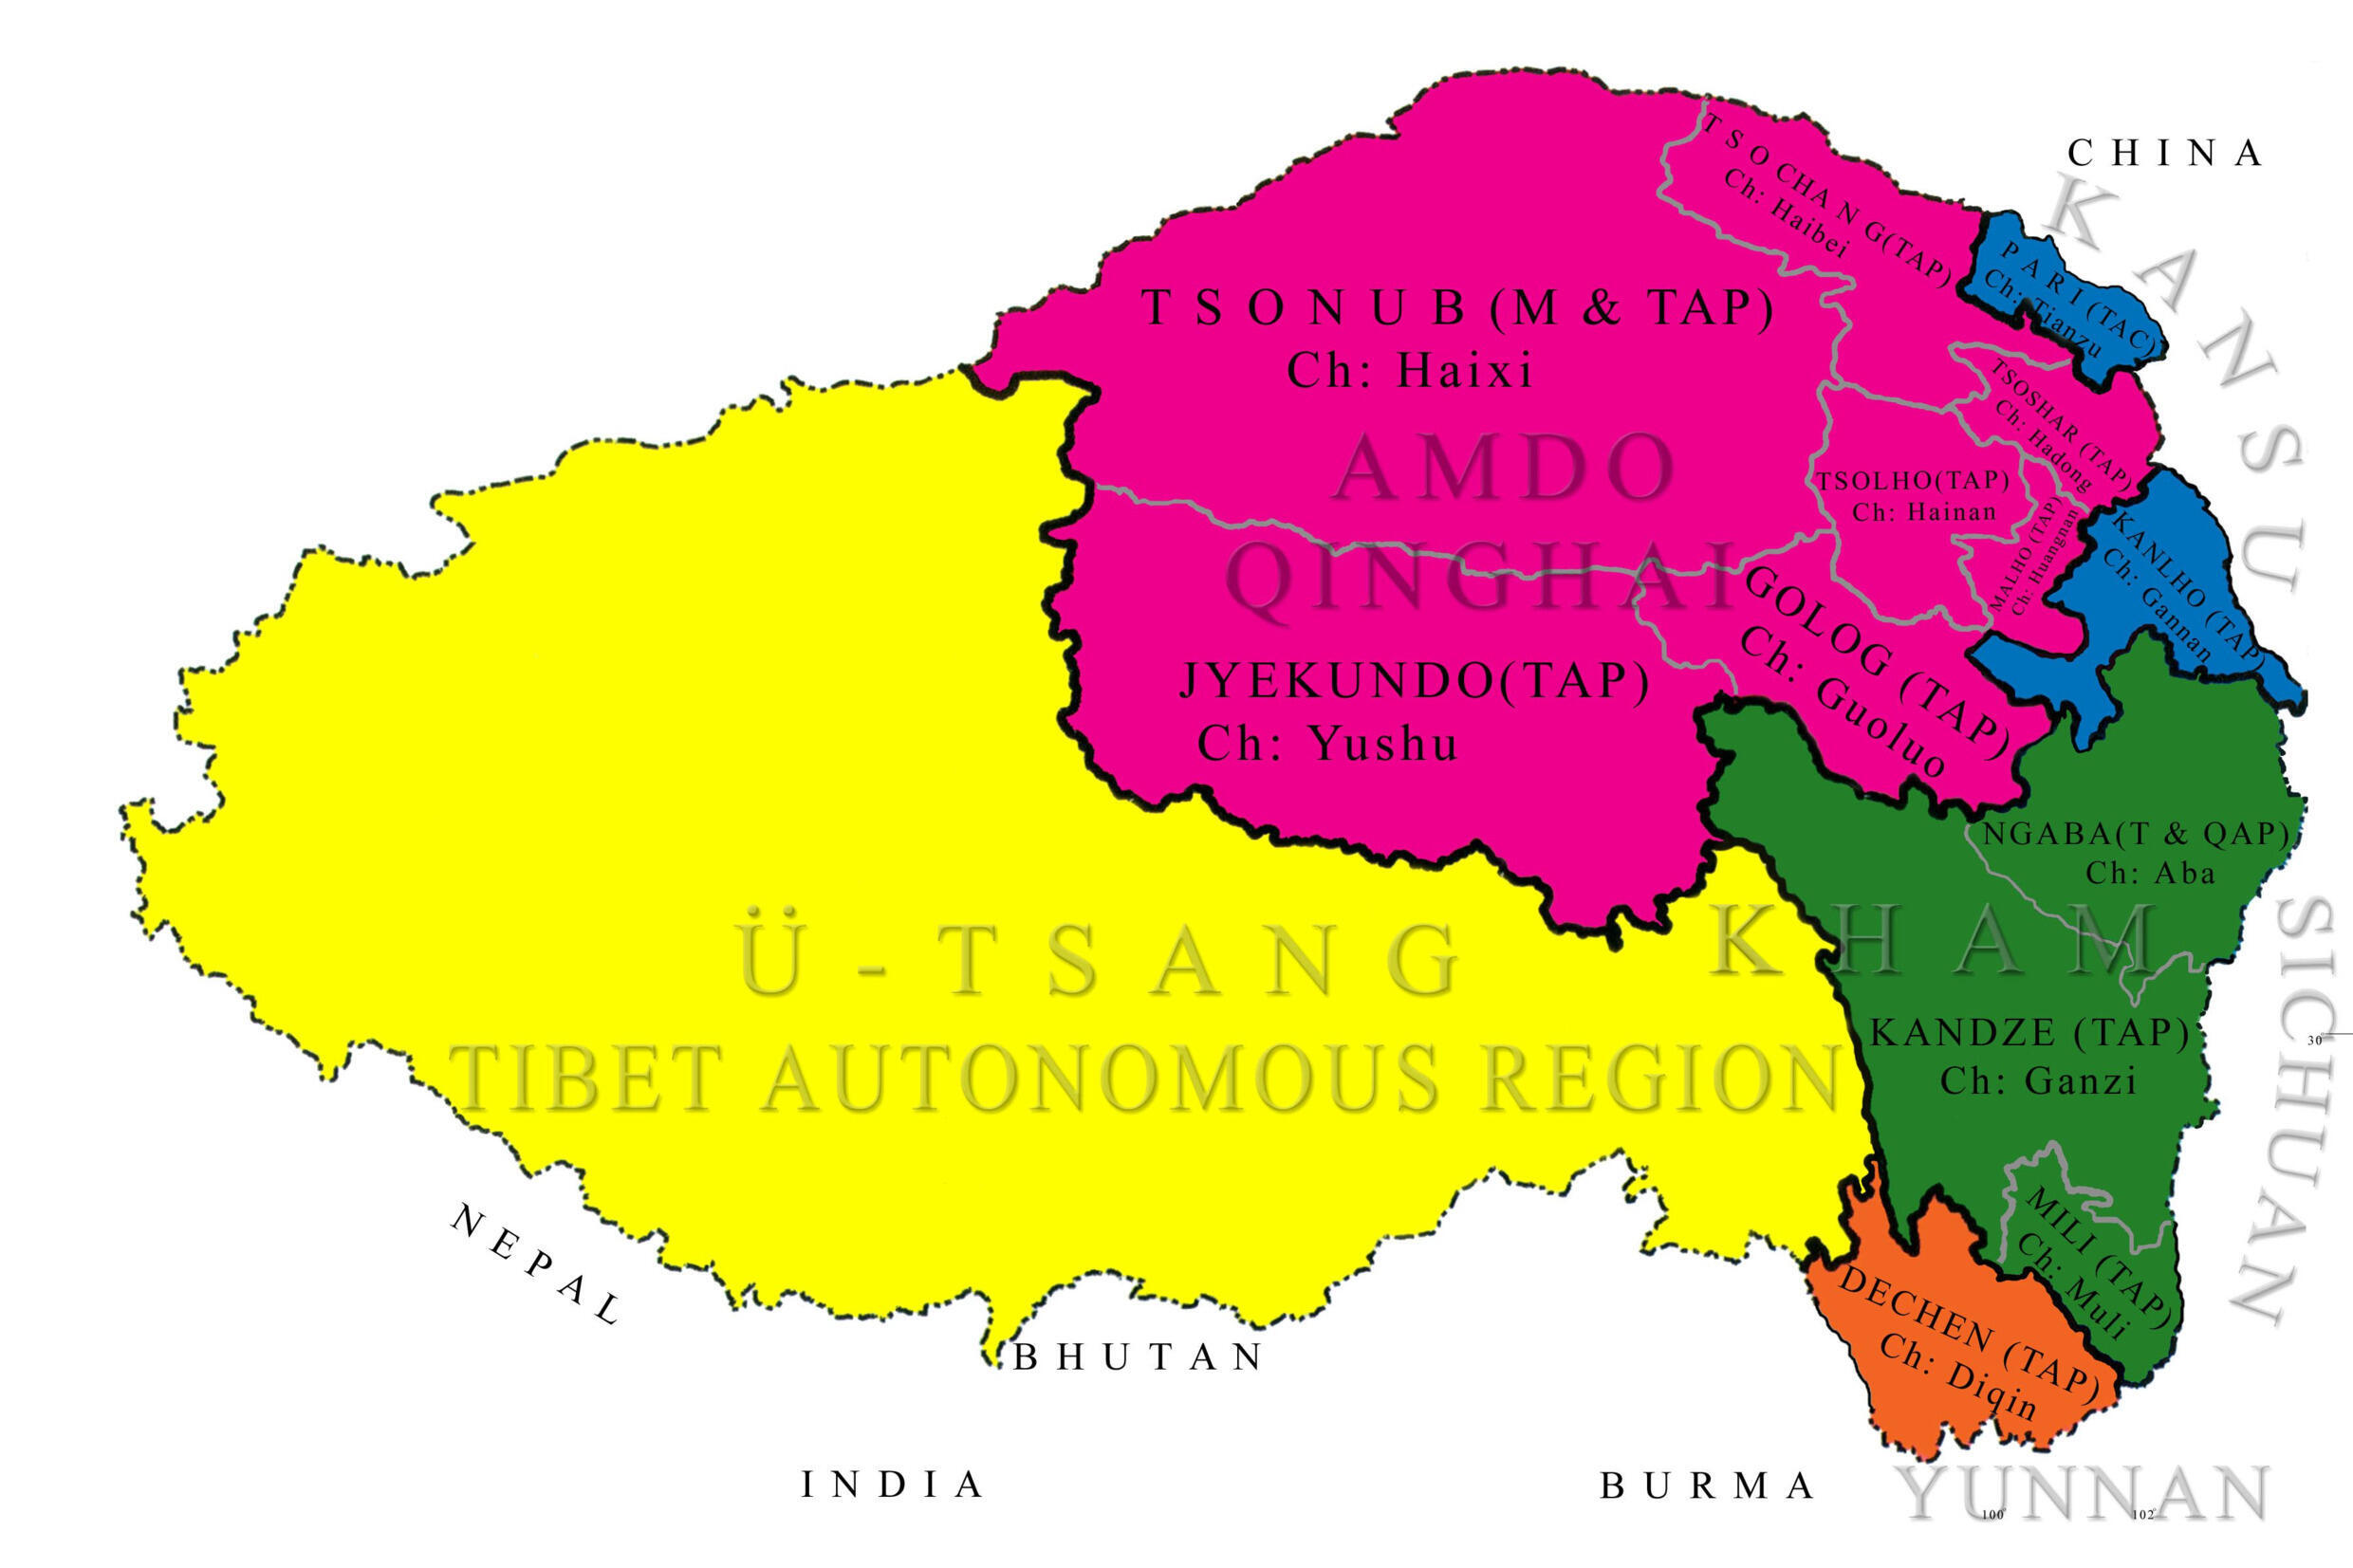 Map of Tibet according to the Tibetan Government in Exile. It includes regions inhabited by Tibetan minorities living in Chinese provinces Qinghai (in pink,) Sichuan (in green) and Yunnan (in orange.)